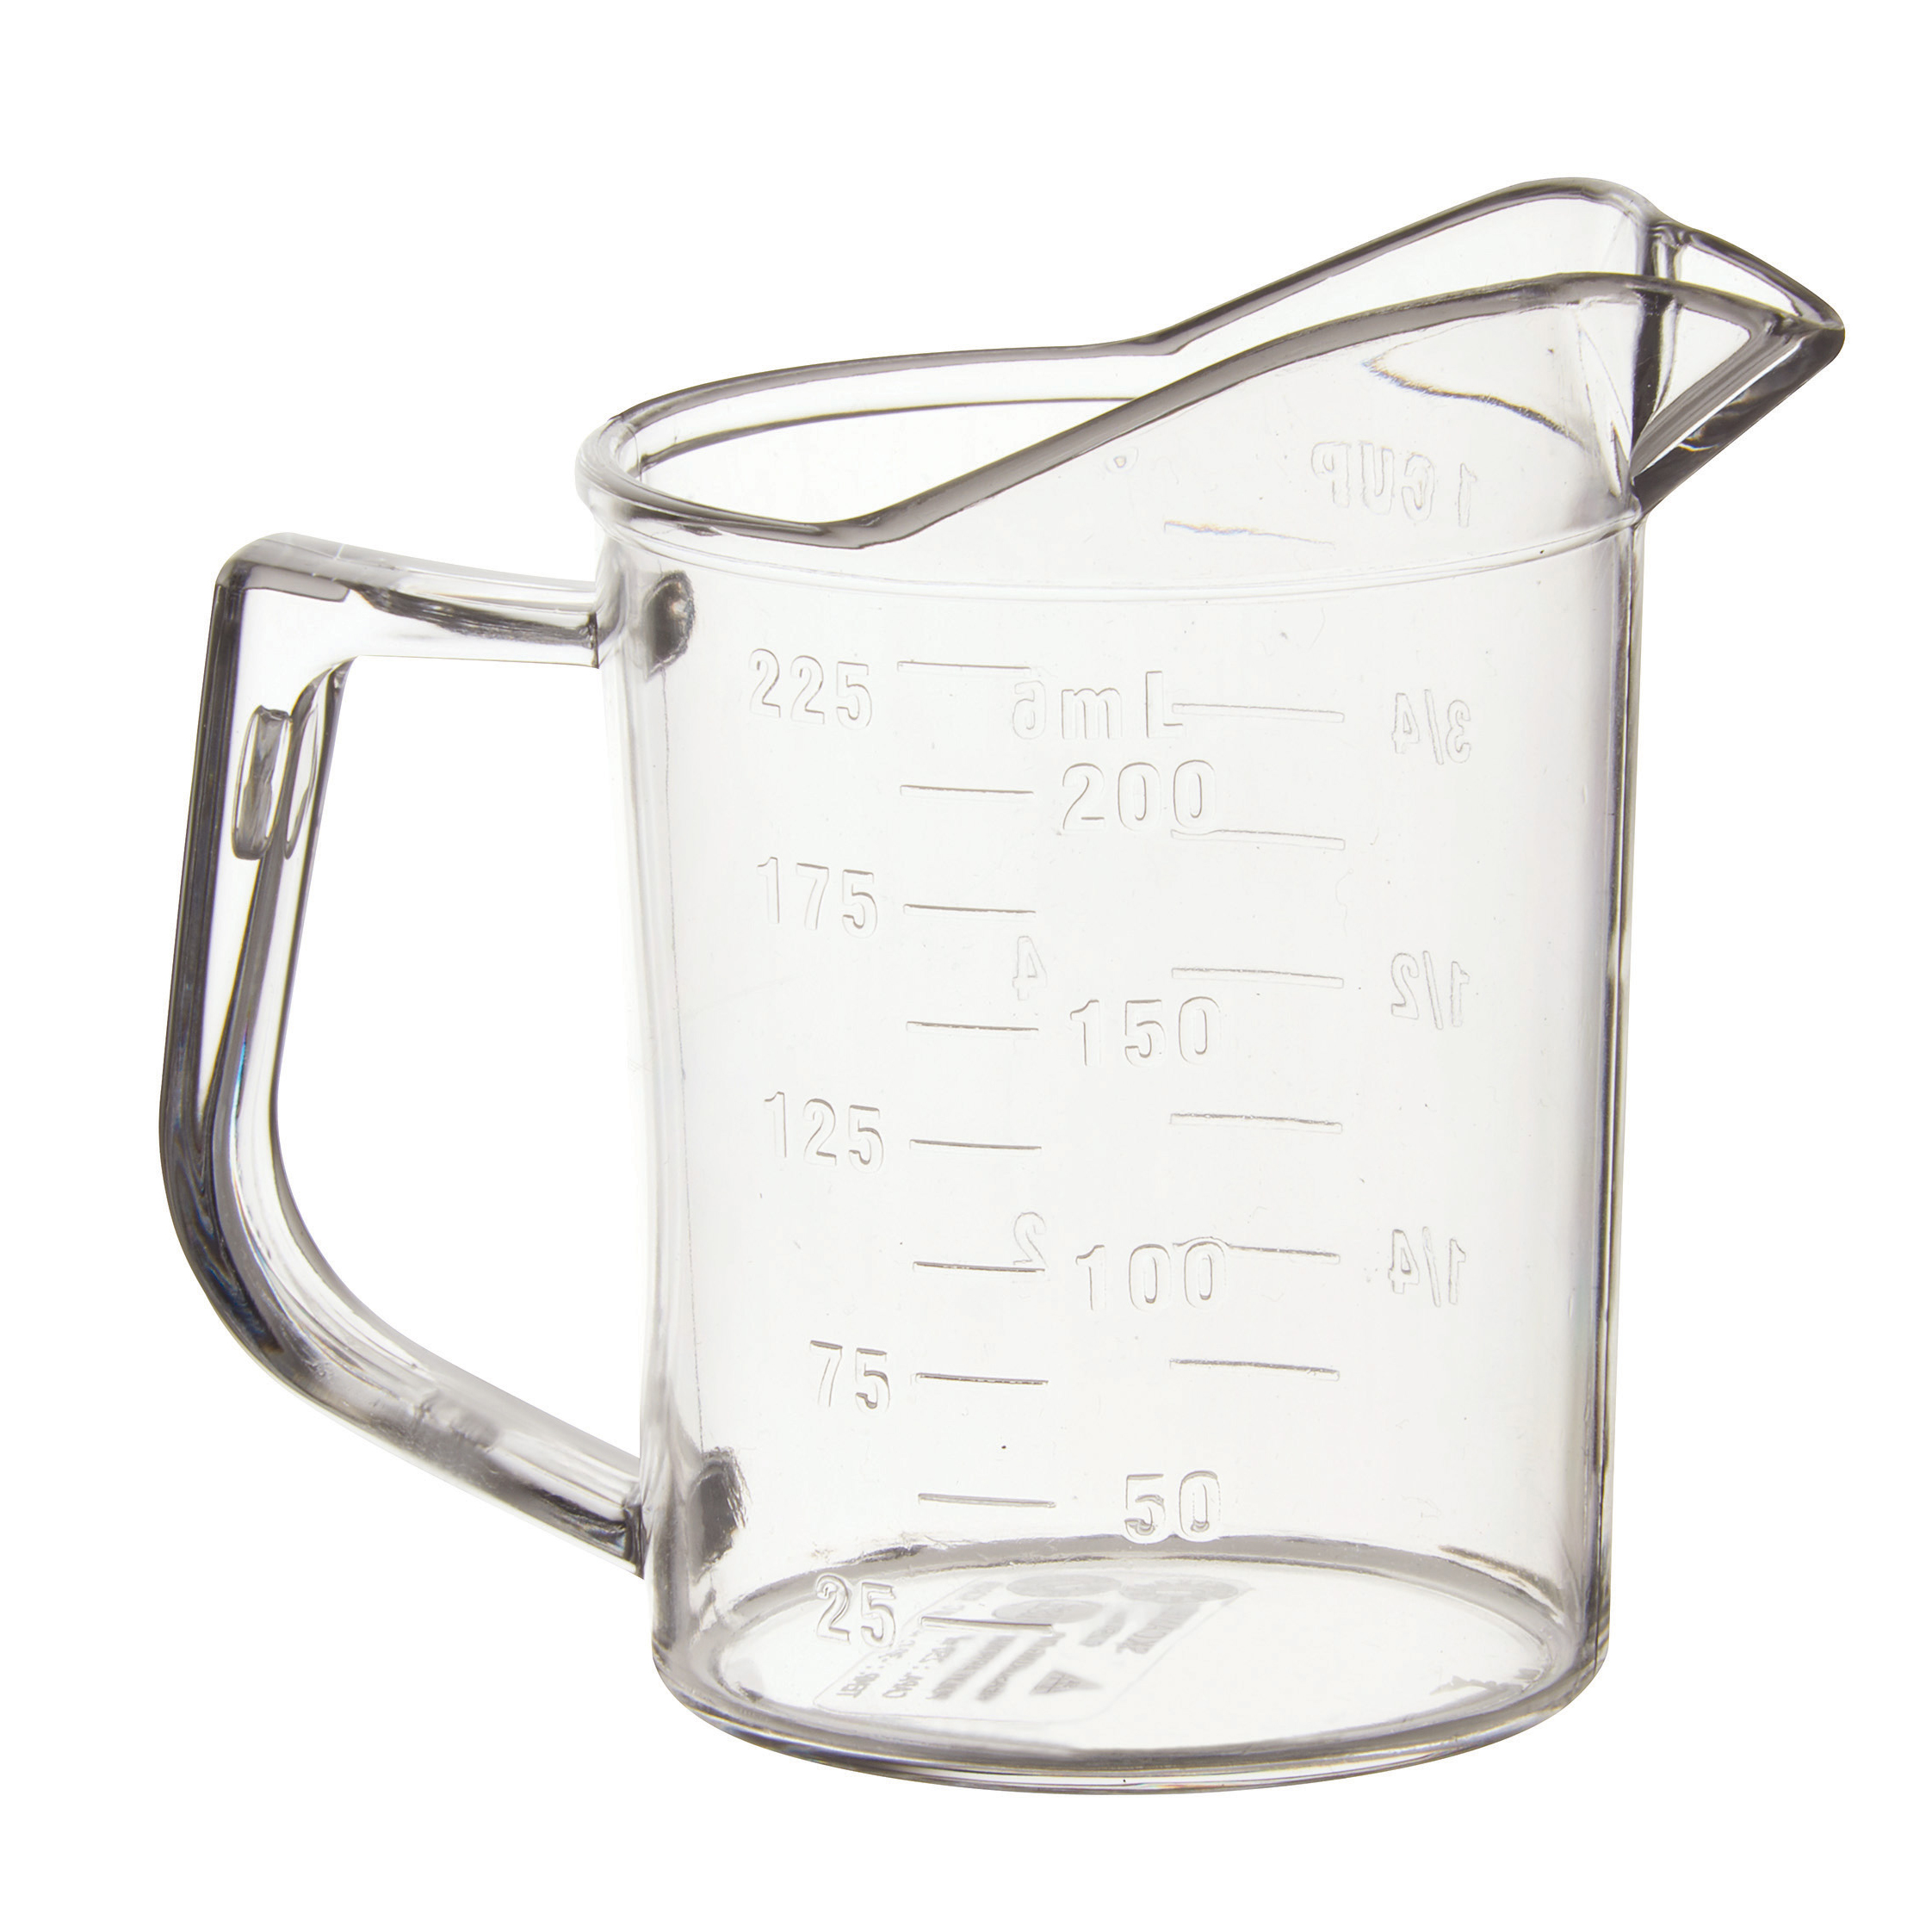 Winco PMU-25 measuring cups